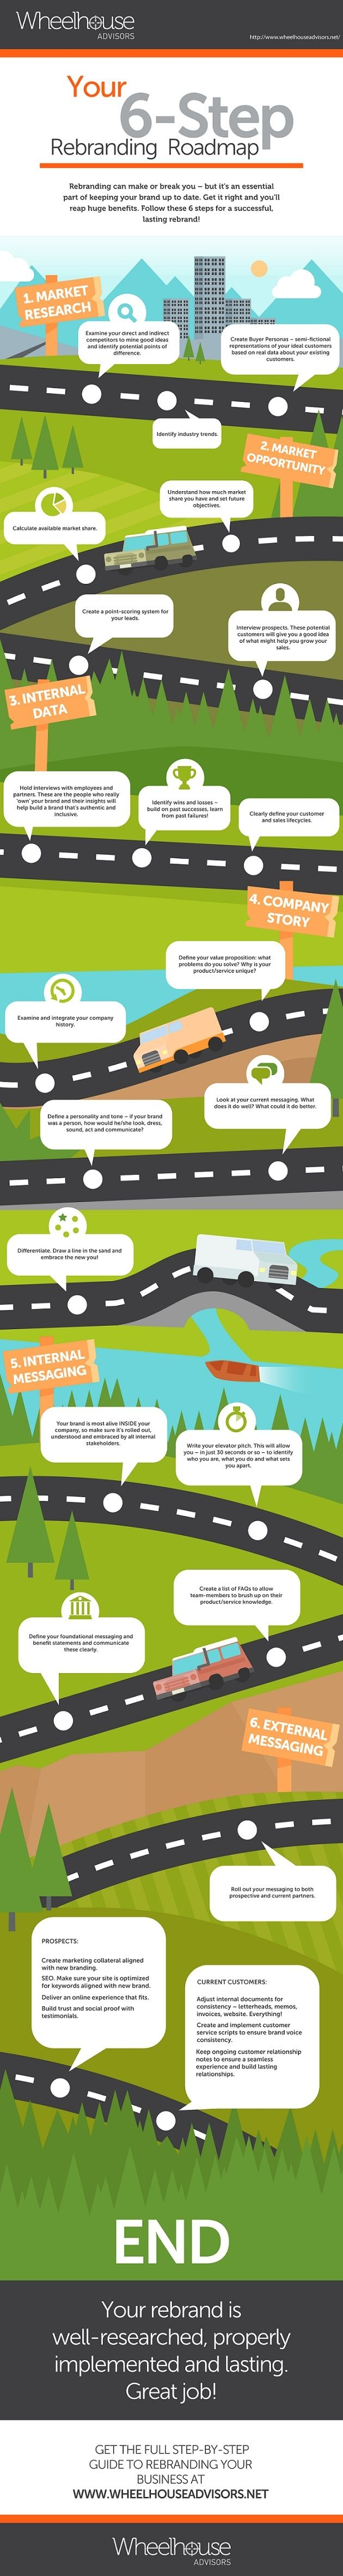 Brand Management - Your Six-Step Road Map to Rebranding [Infographic] : MarketingProfs Article